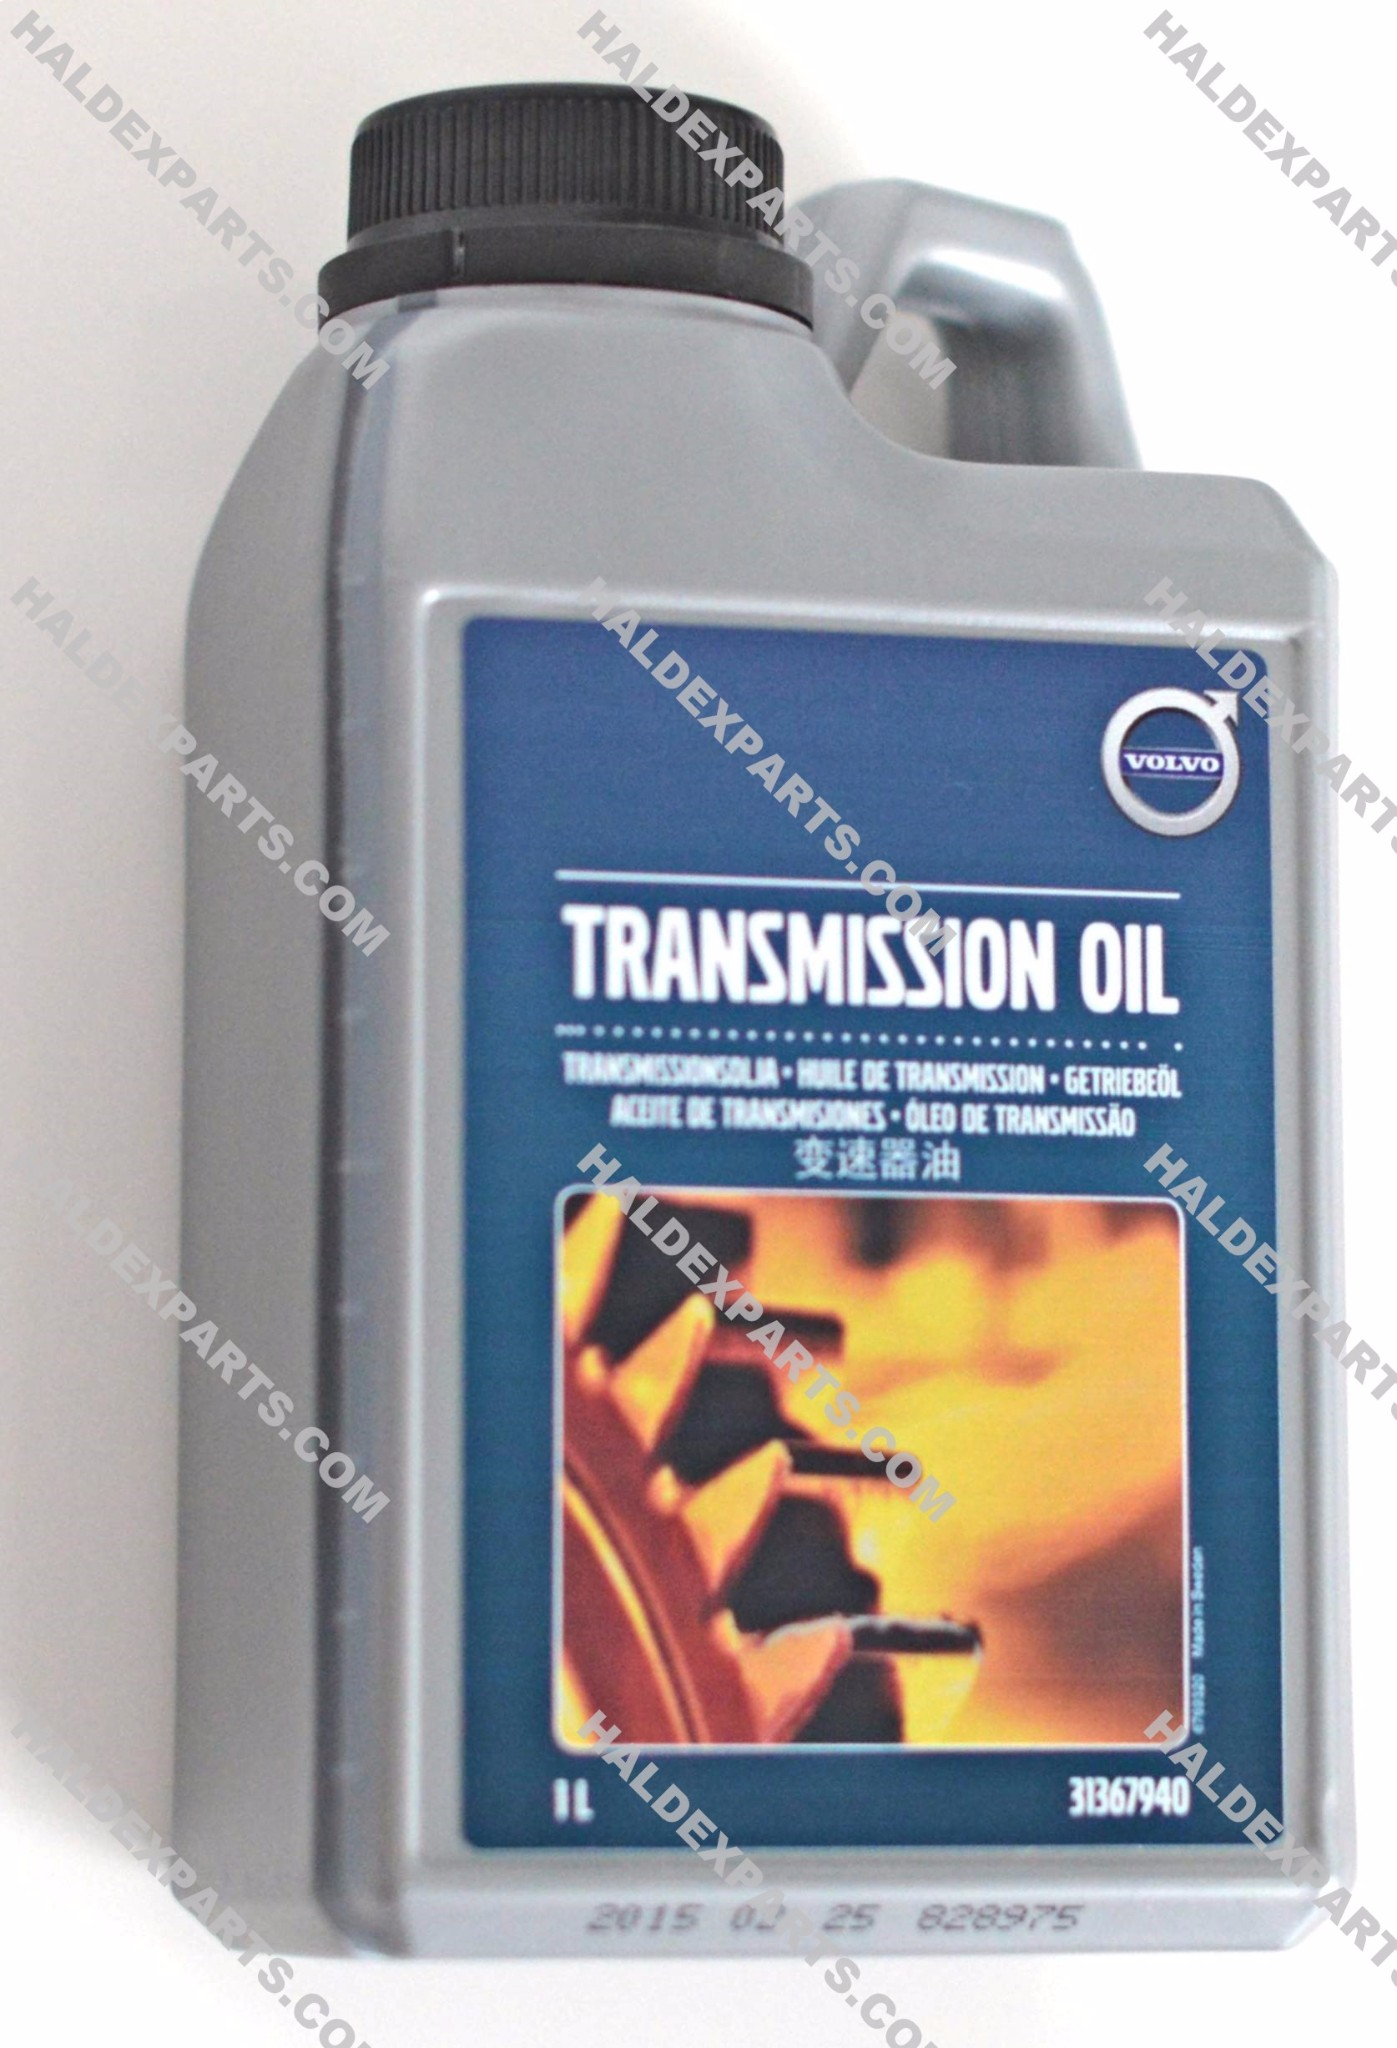 Volvo Transmission Oil Aoc Coupling